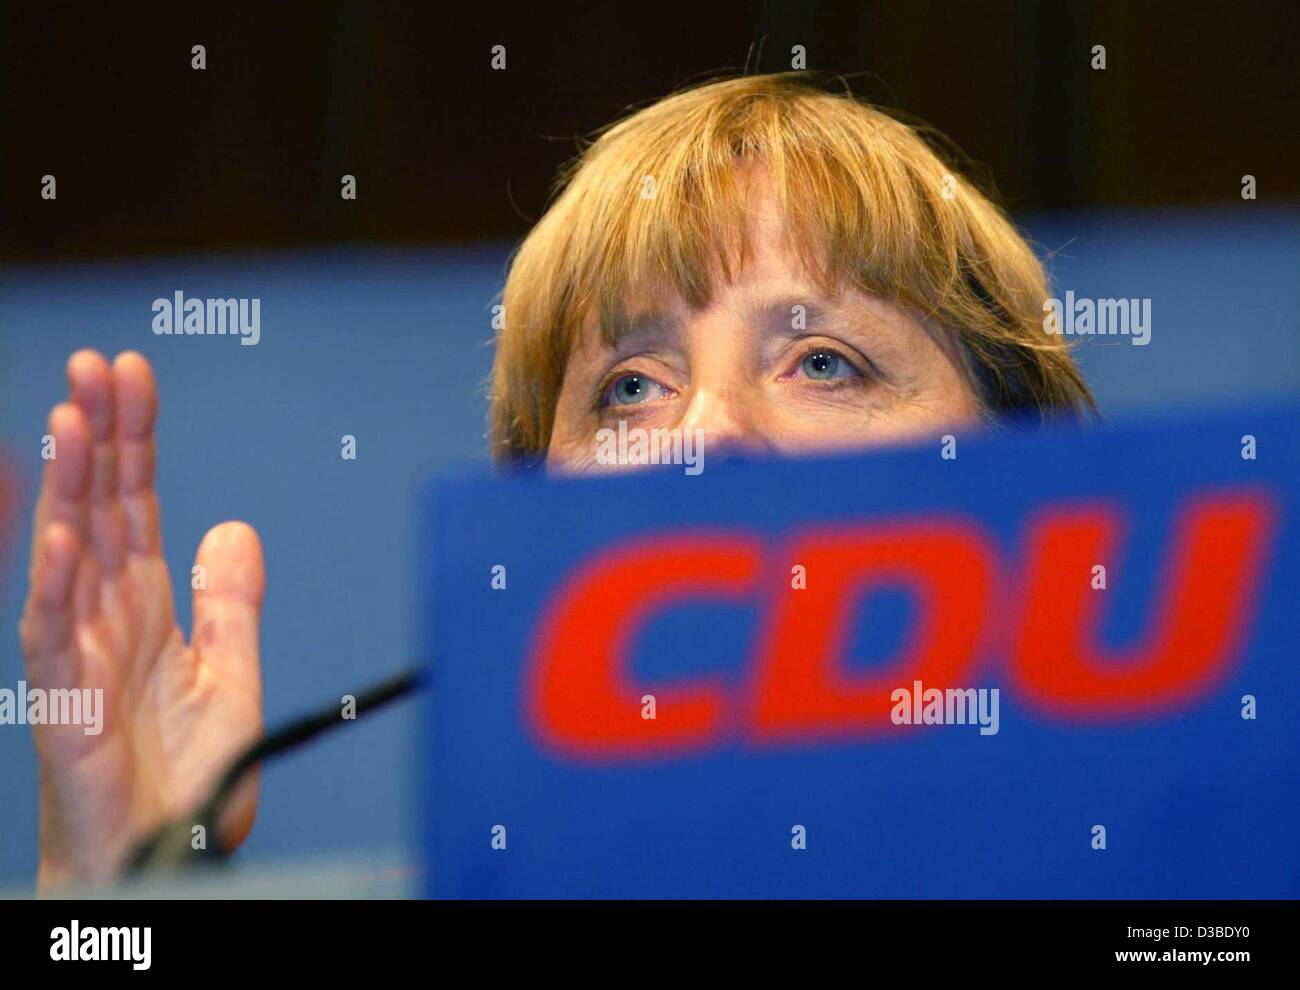 (dpa) - Angela Merkel, Chairwoman of the CDU party, gives a speech in the election campaign for the upcoming regional elections in the German state Lower Saxony, Osnabrueck, Germany, 23 January 2003. Merkel accuses Chancellor Schroeder of not taking the work of weapon inspectors of the United Nation Stock Photo